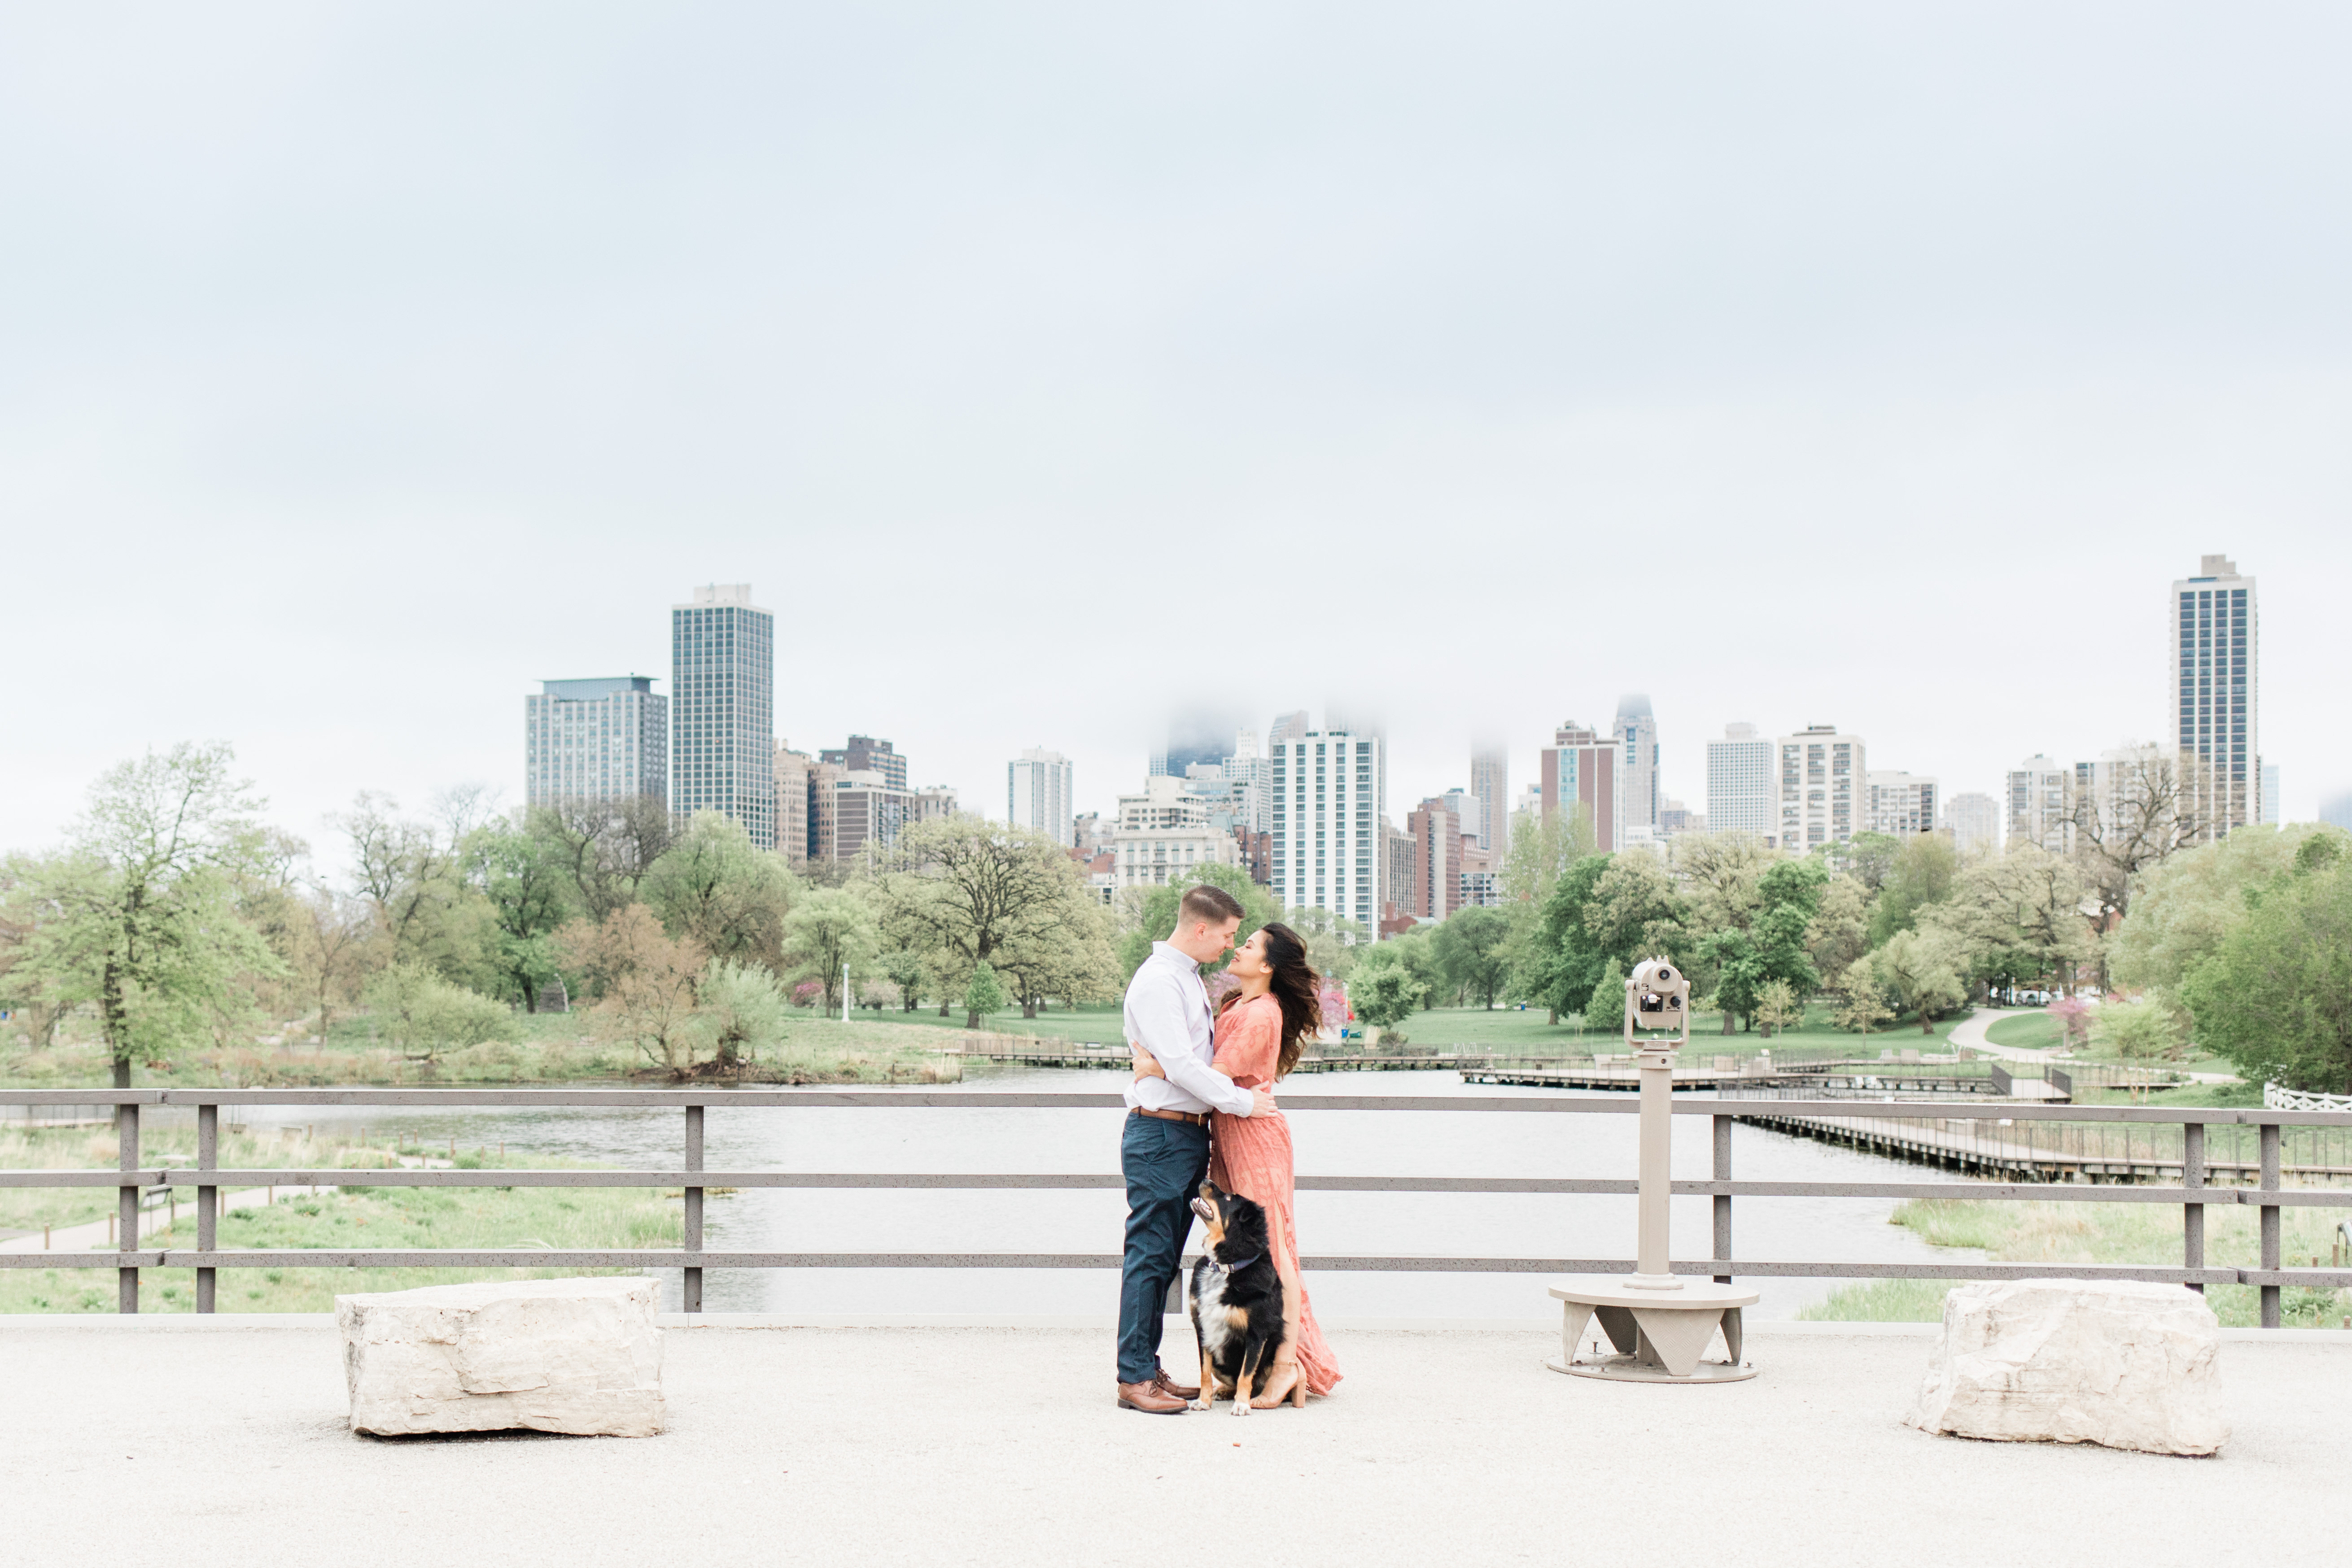 chicago_lincoln_park_engagement_jessica_ryan-6